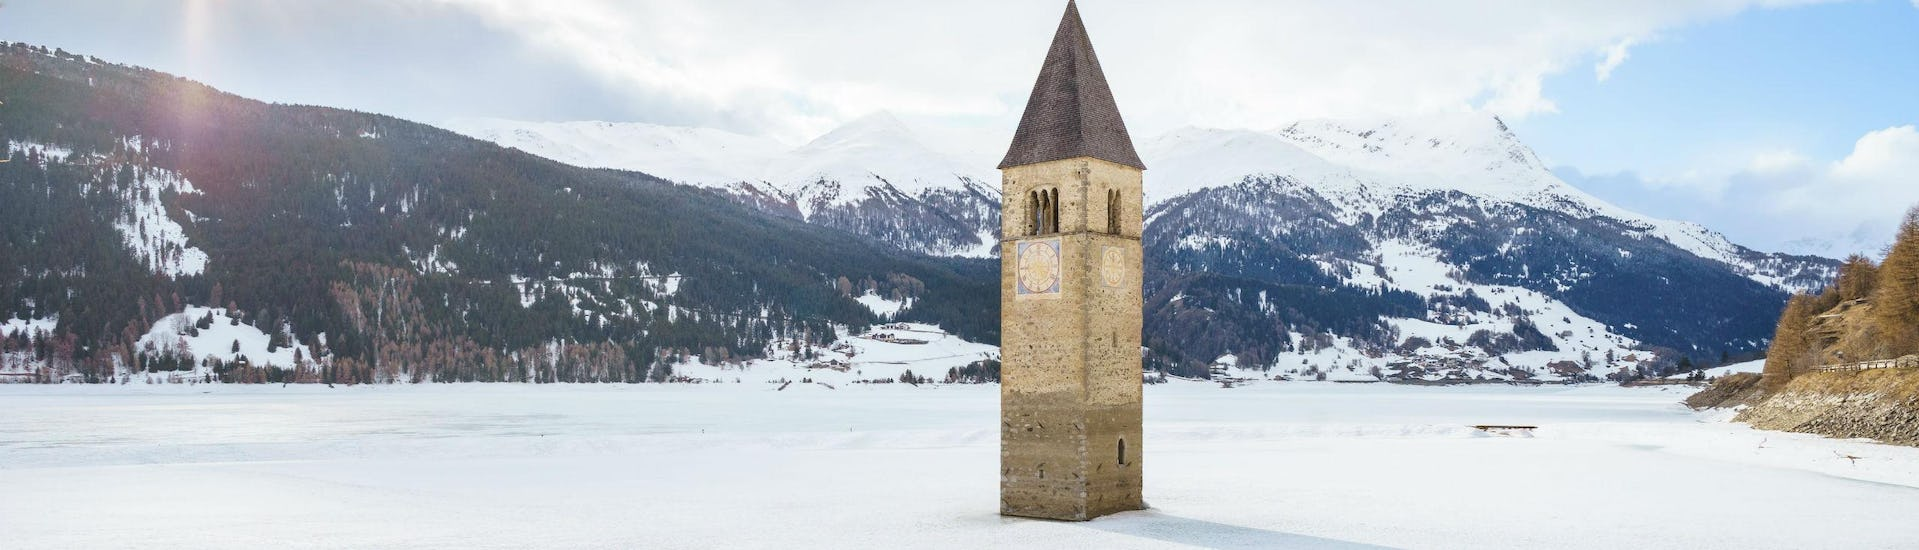 An image the sunken church in Lake Reschen close to the Austrian ski resort of Nauders, where aspiring skiers can book ski lessons with one of the local ski schools.